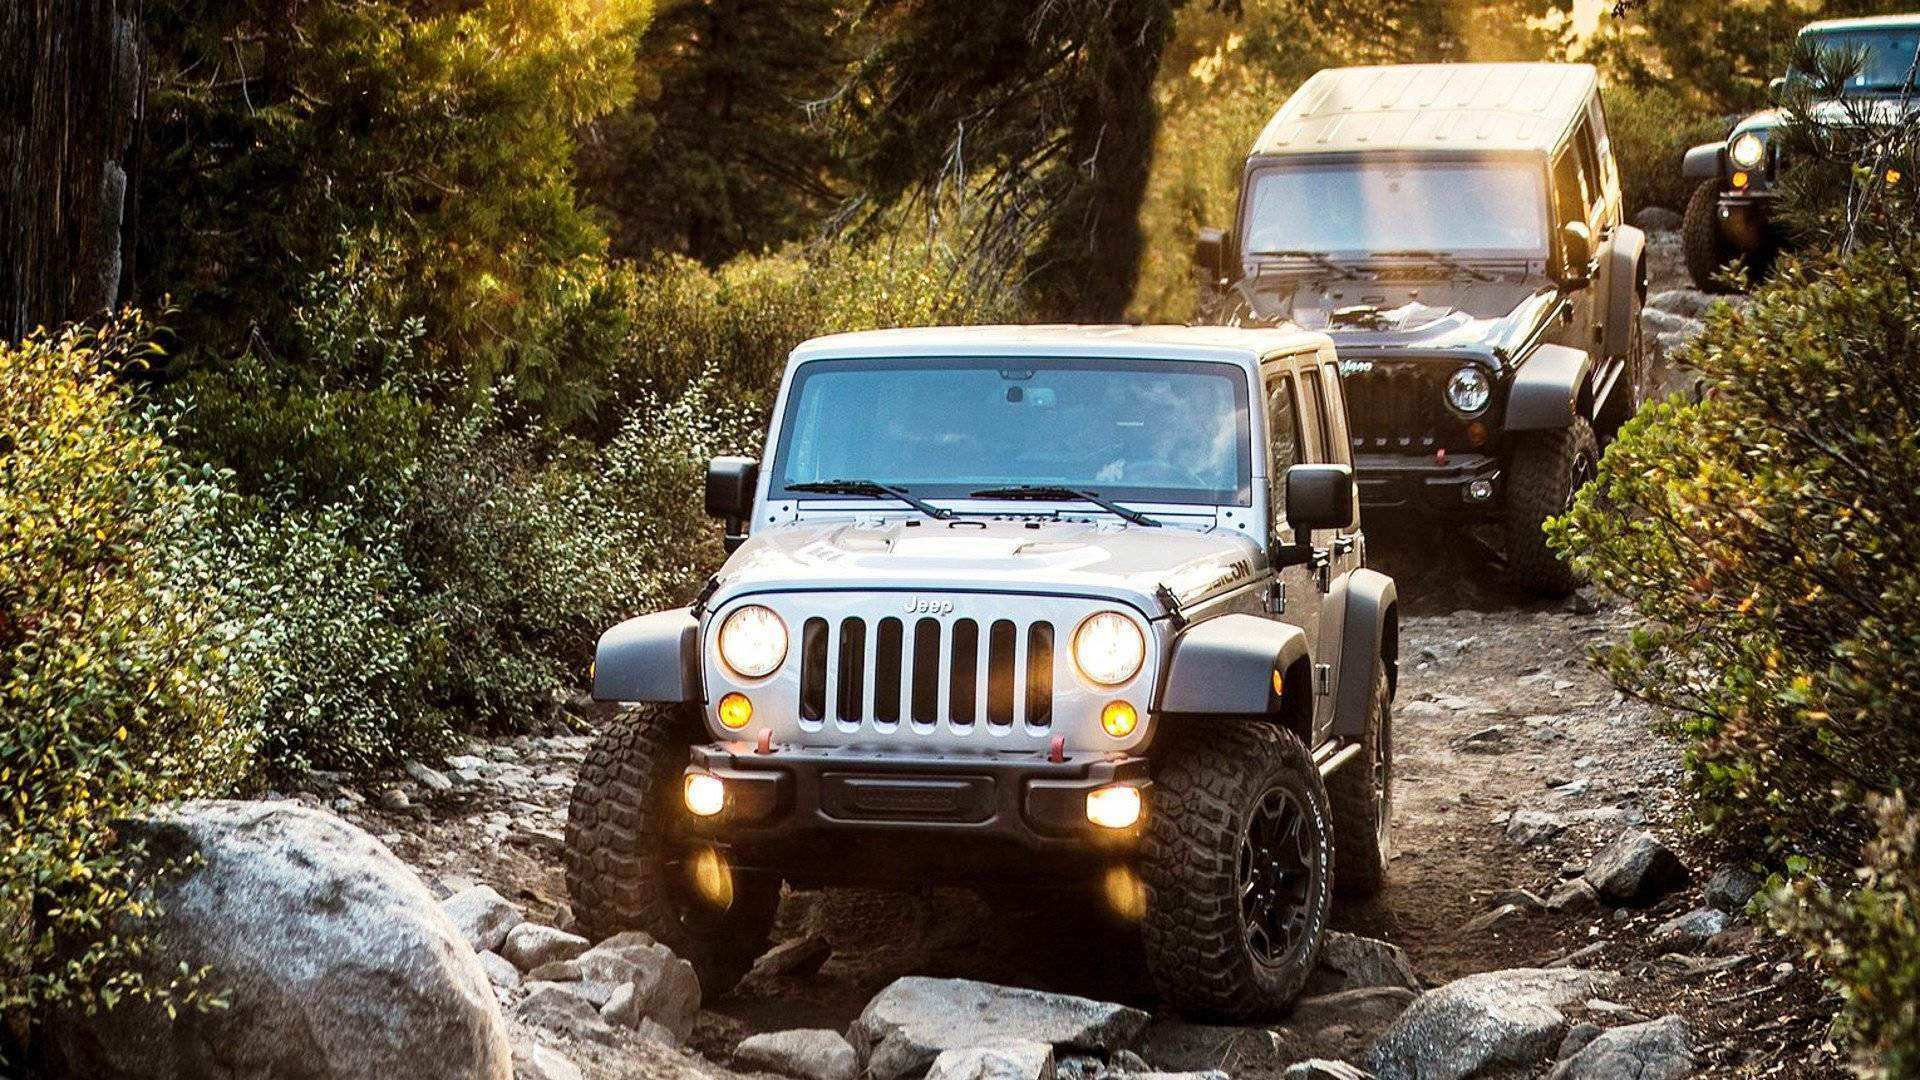 99 New New Bantam Jeep 2019 First Drive Pictures for New Bantam Jeep 2019 First Drive